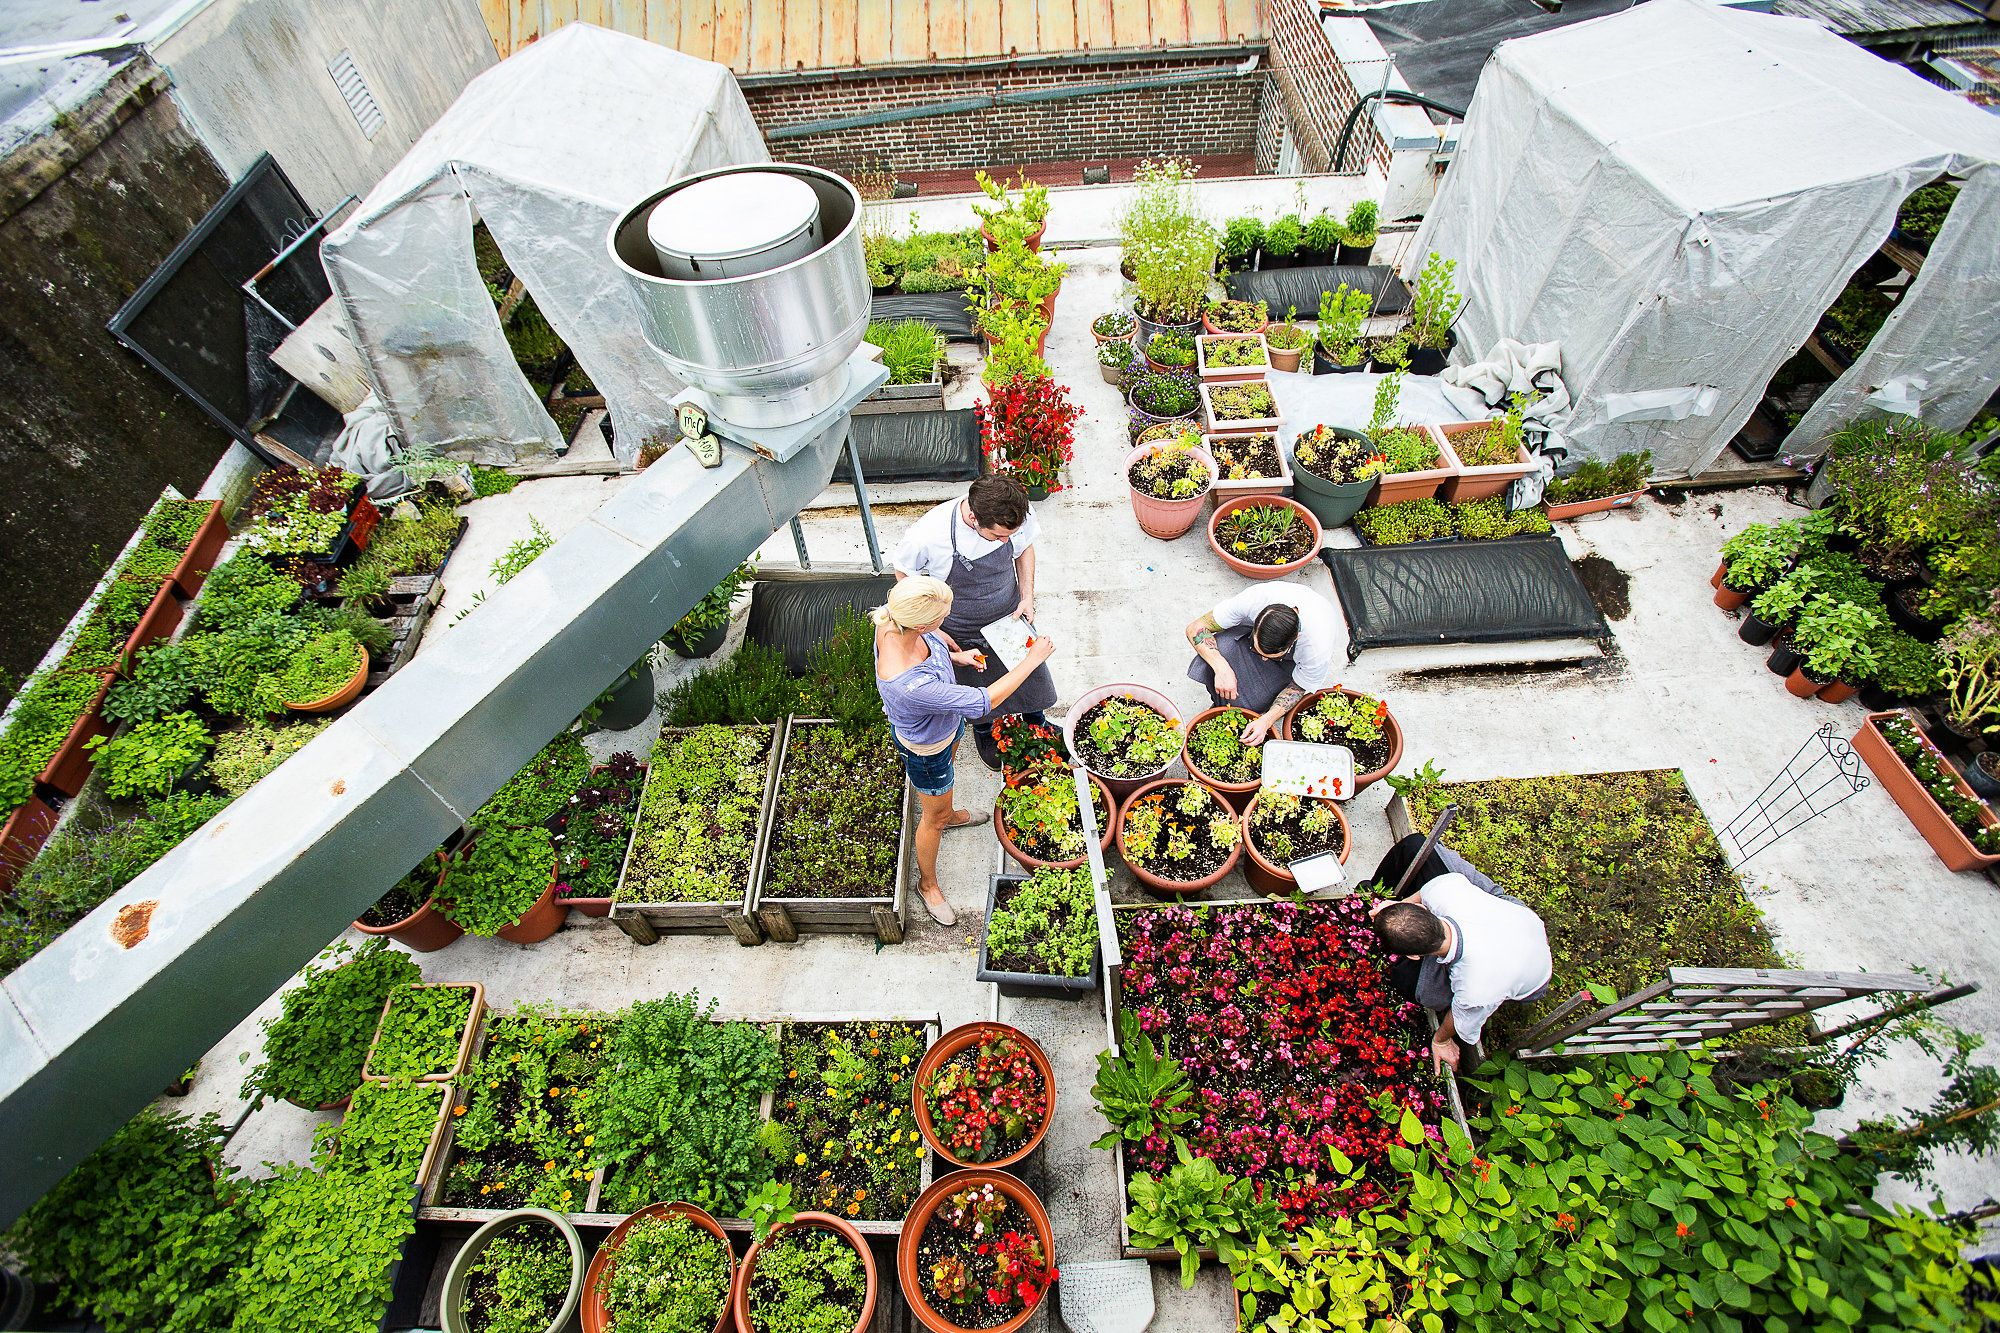 birds eye view of the roof garden - Garden Design Birds Eye View